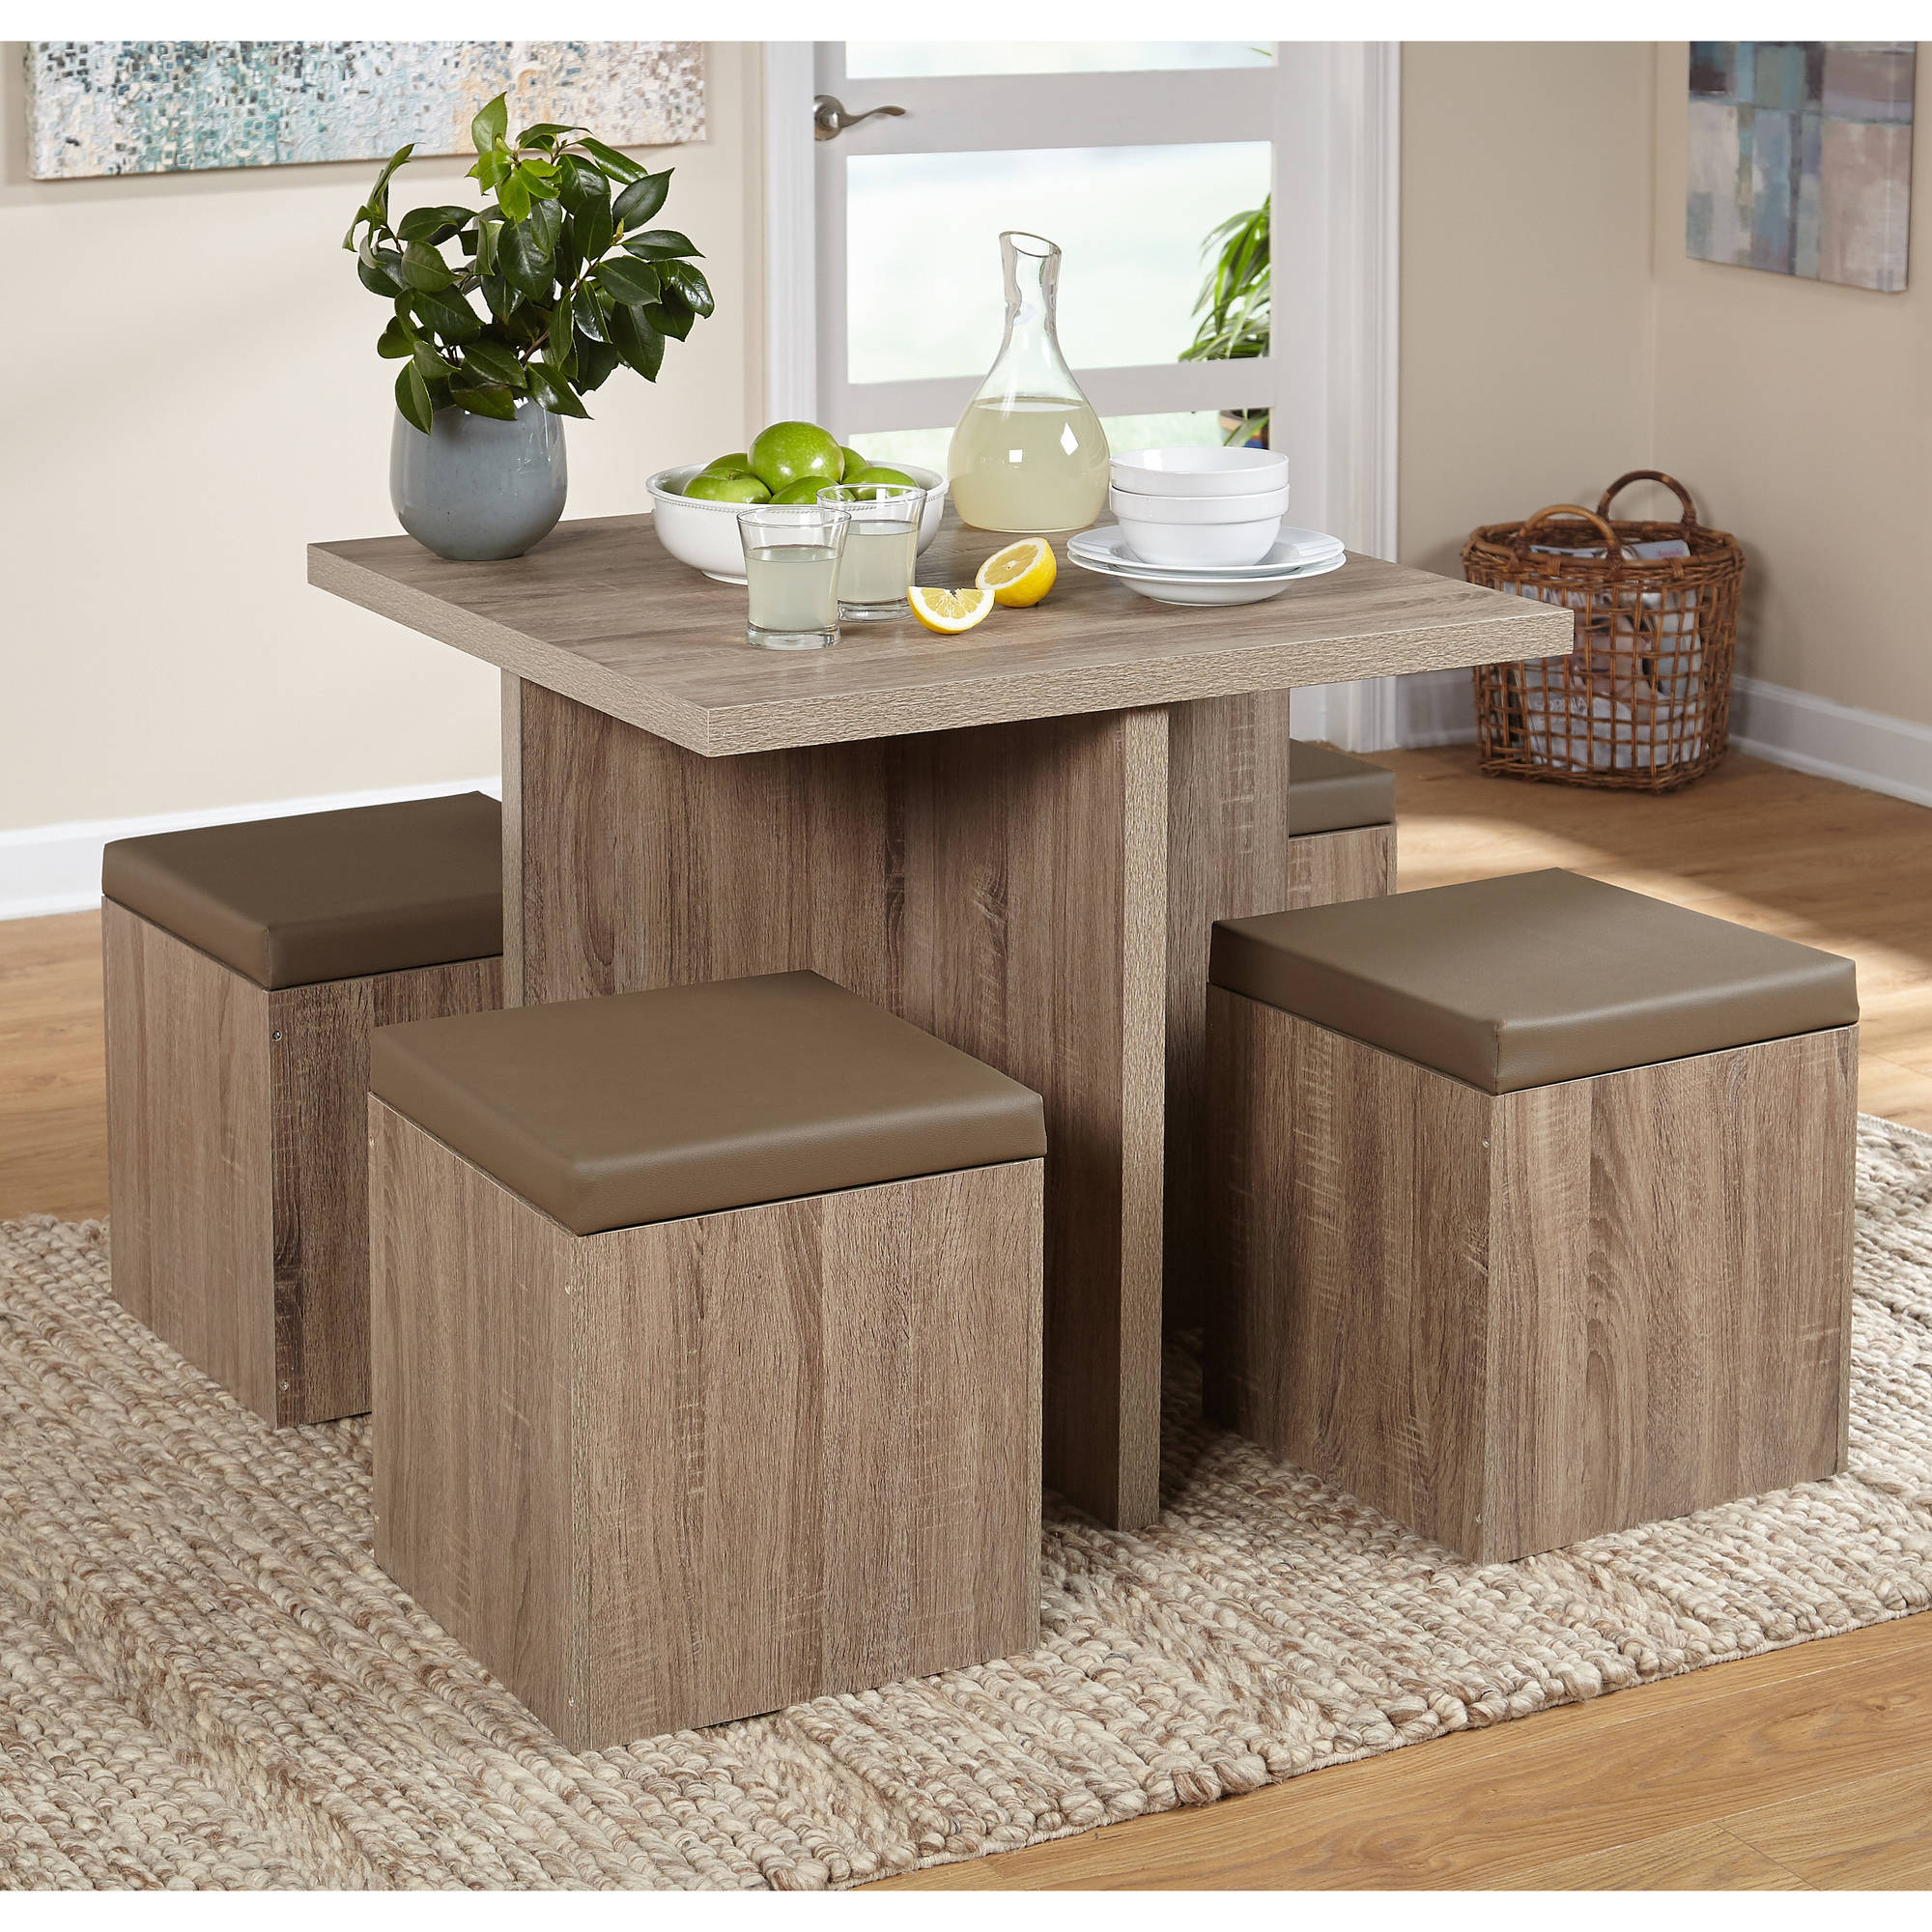 Click here to buy 5-Piece Baxter Dining Room Set with Storage Ottoman, Multiple Colors by Overstock.